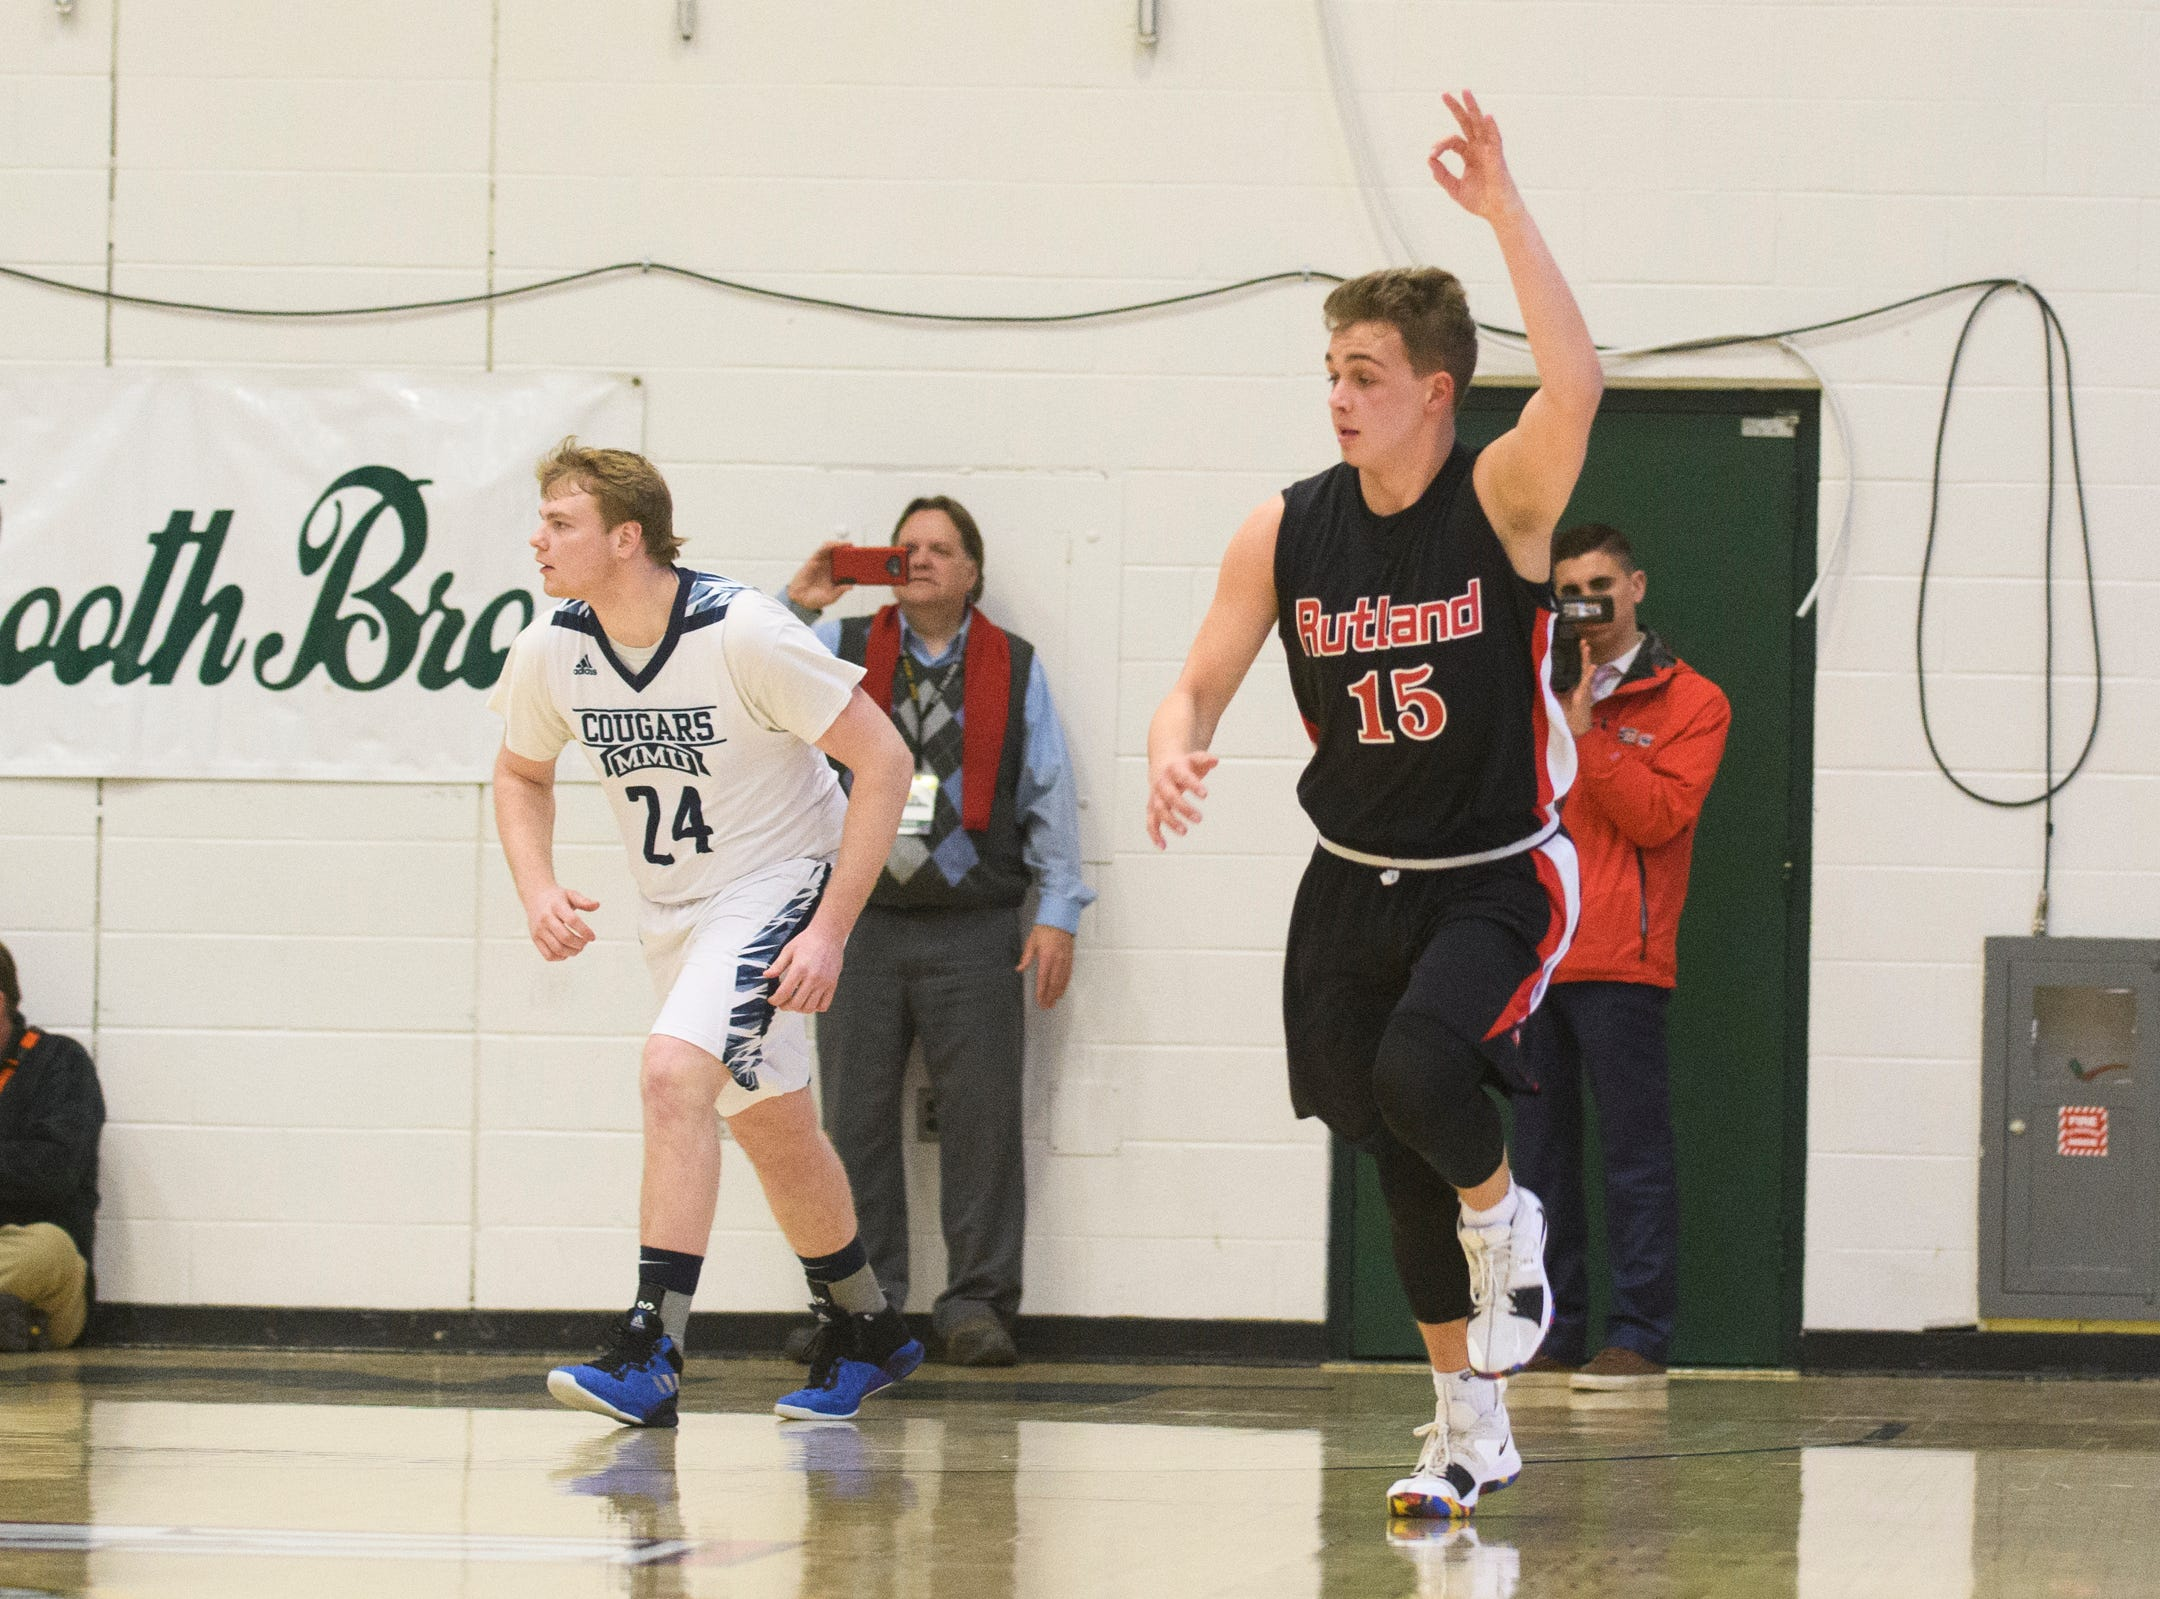 Rutland's Ethan Notte (15) celebrates after making a three pointer during the boys DI semi final basketball game between the Rutland Raiders and the Mount Mansfield Cougars at Patrick Gym on Monday night March 11, 2019 in Burlington, Vermont.